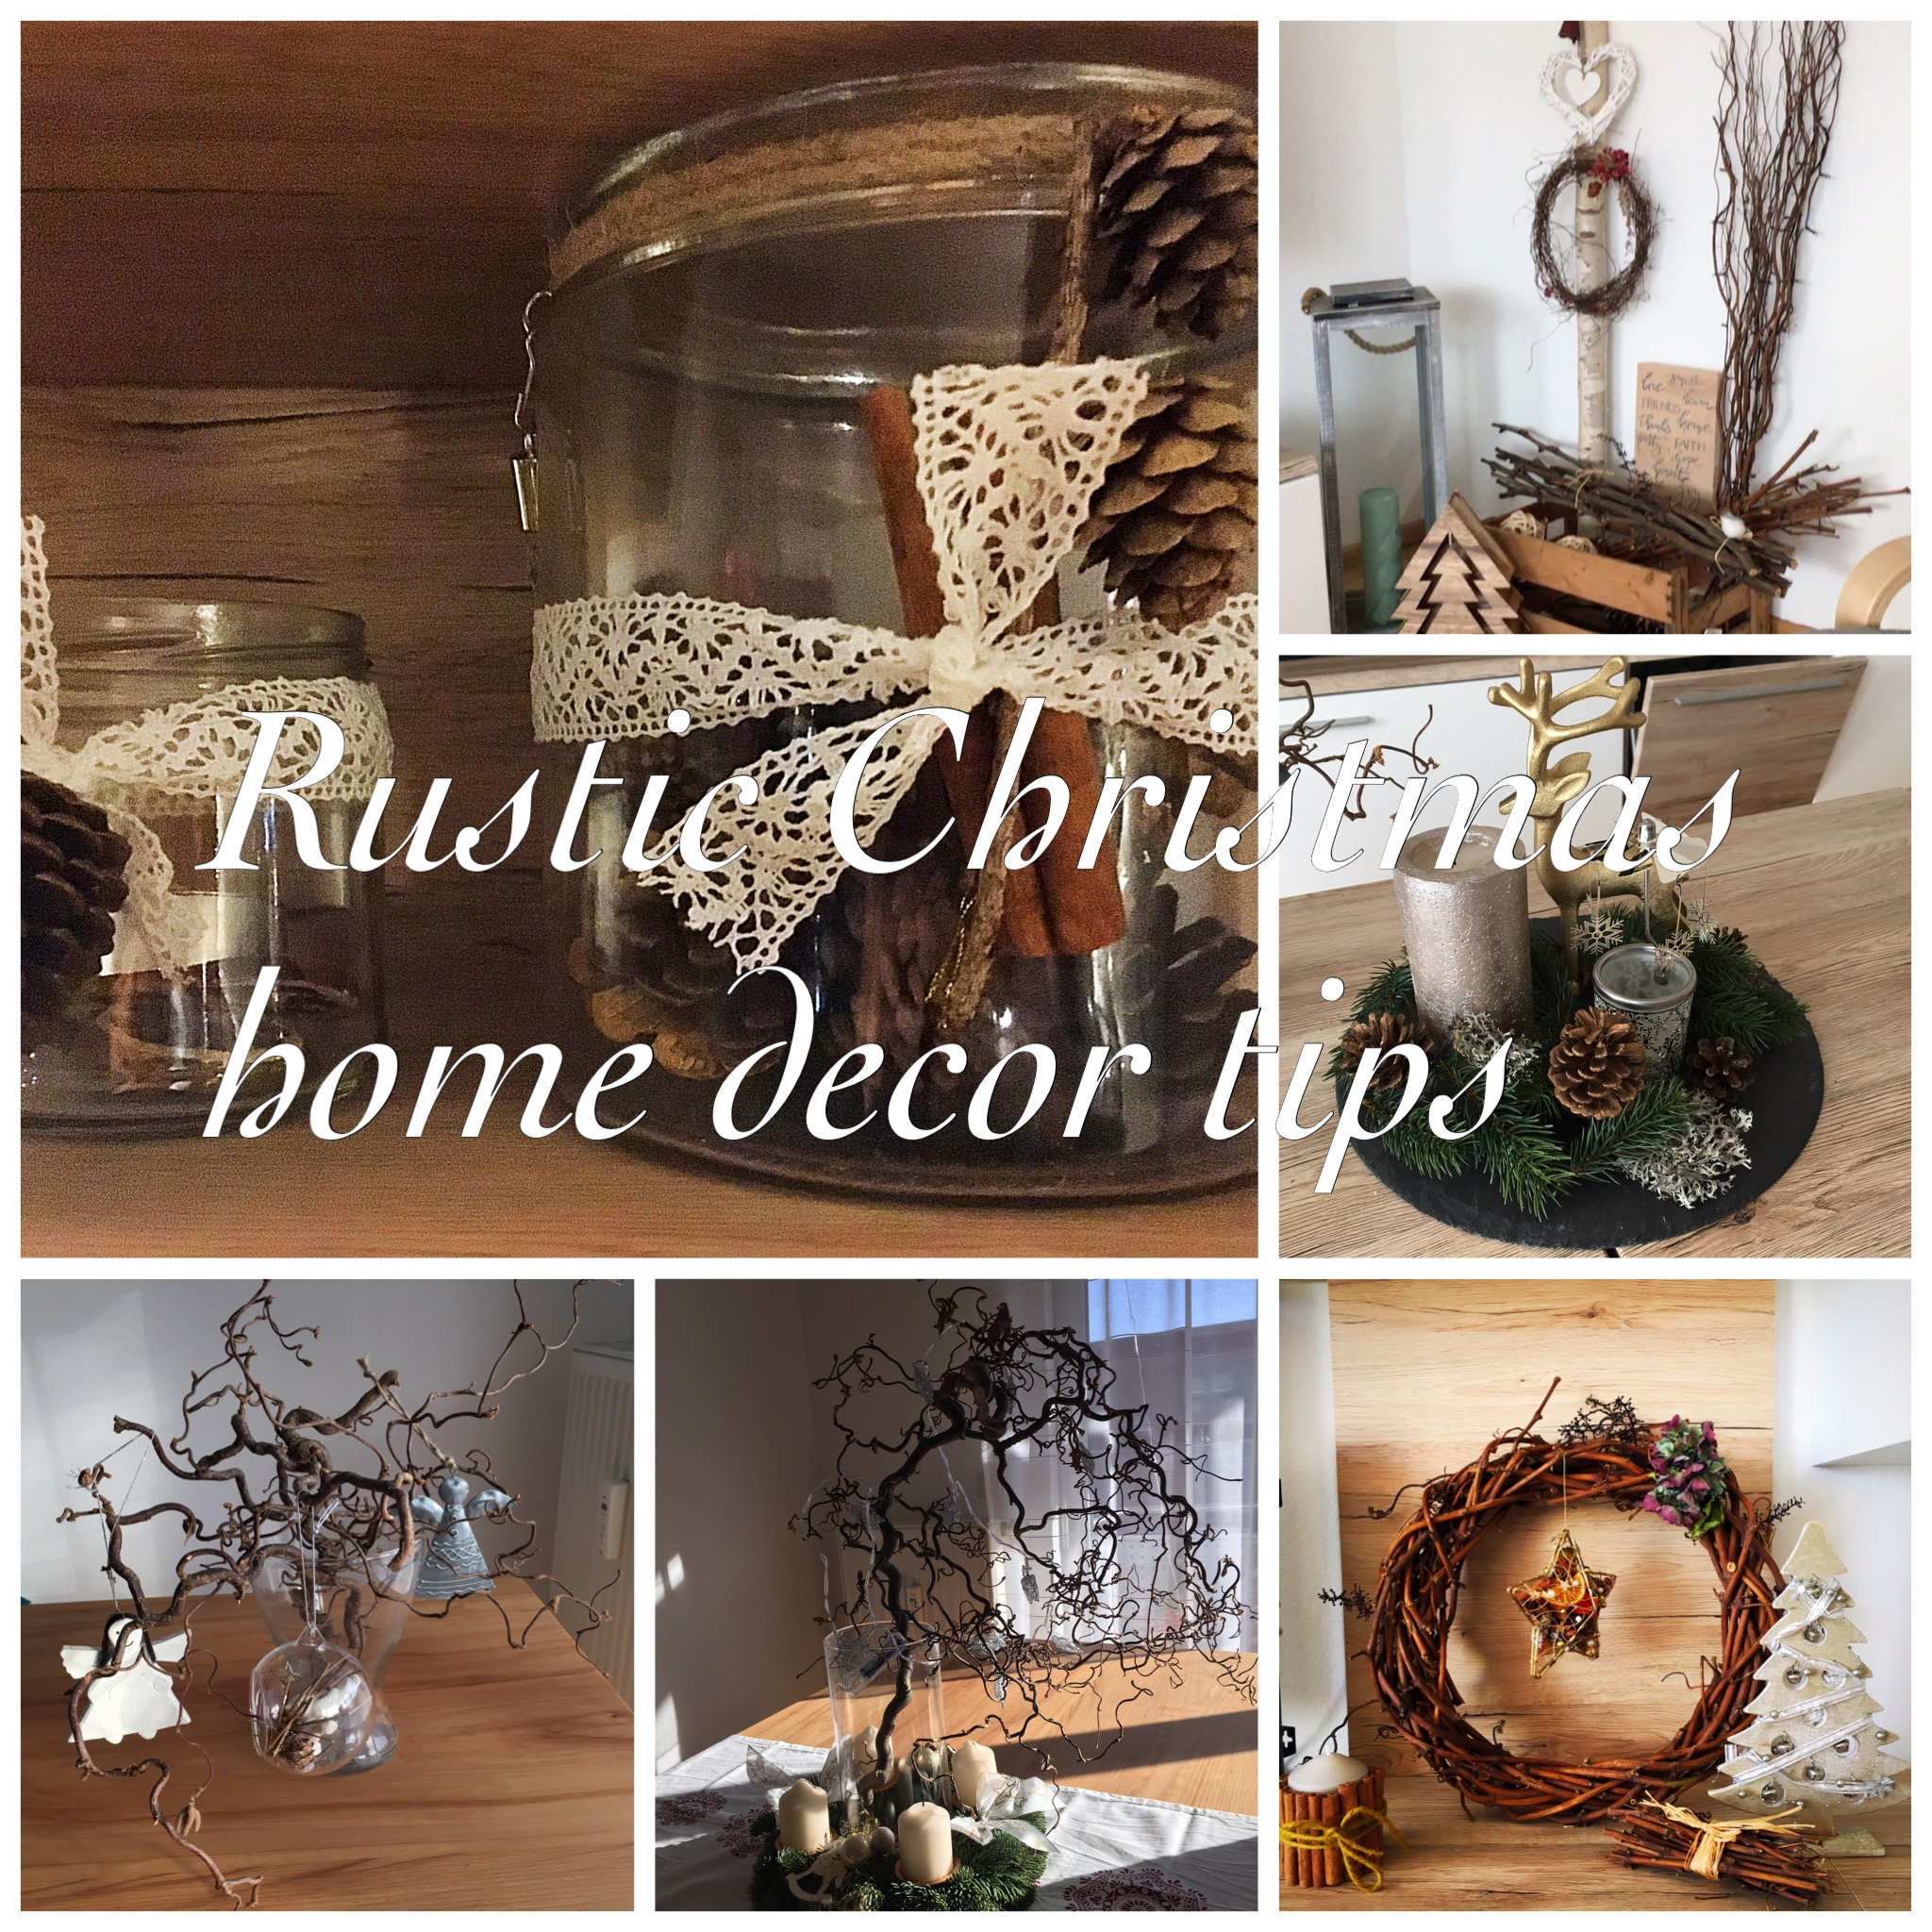 12 Home Decor Gift Ideas From Walmart: Rustic Christmas Home Decor Tips